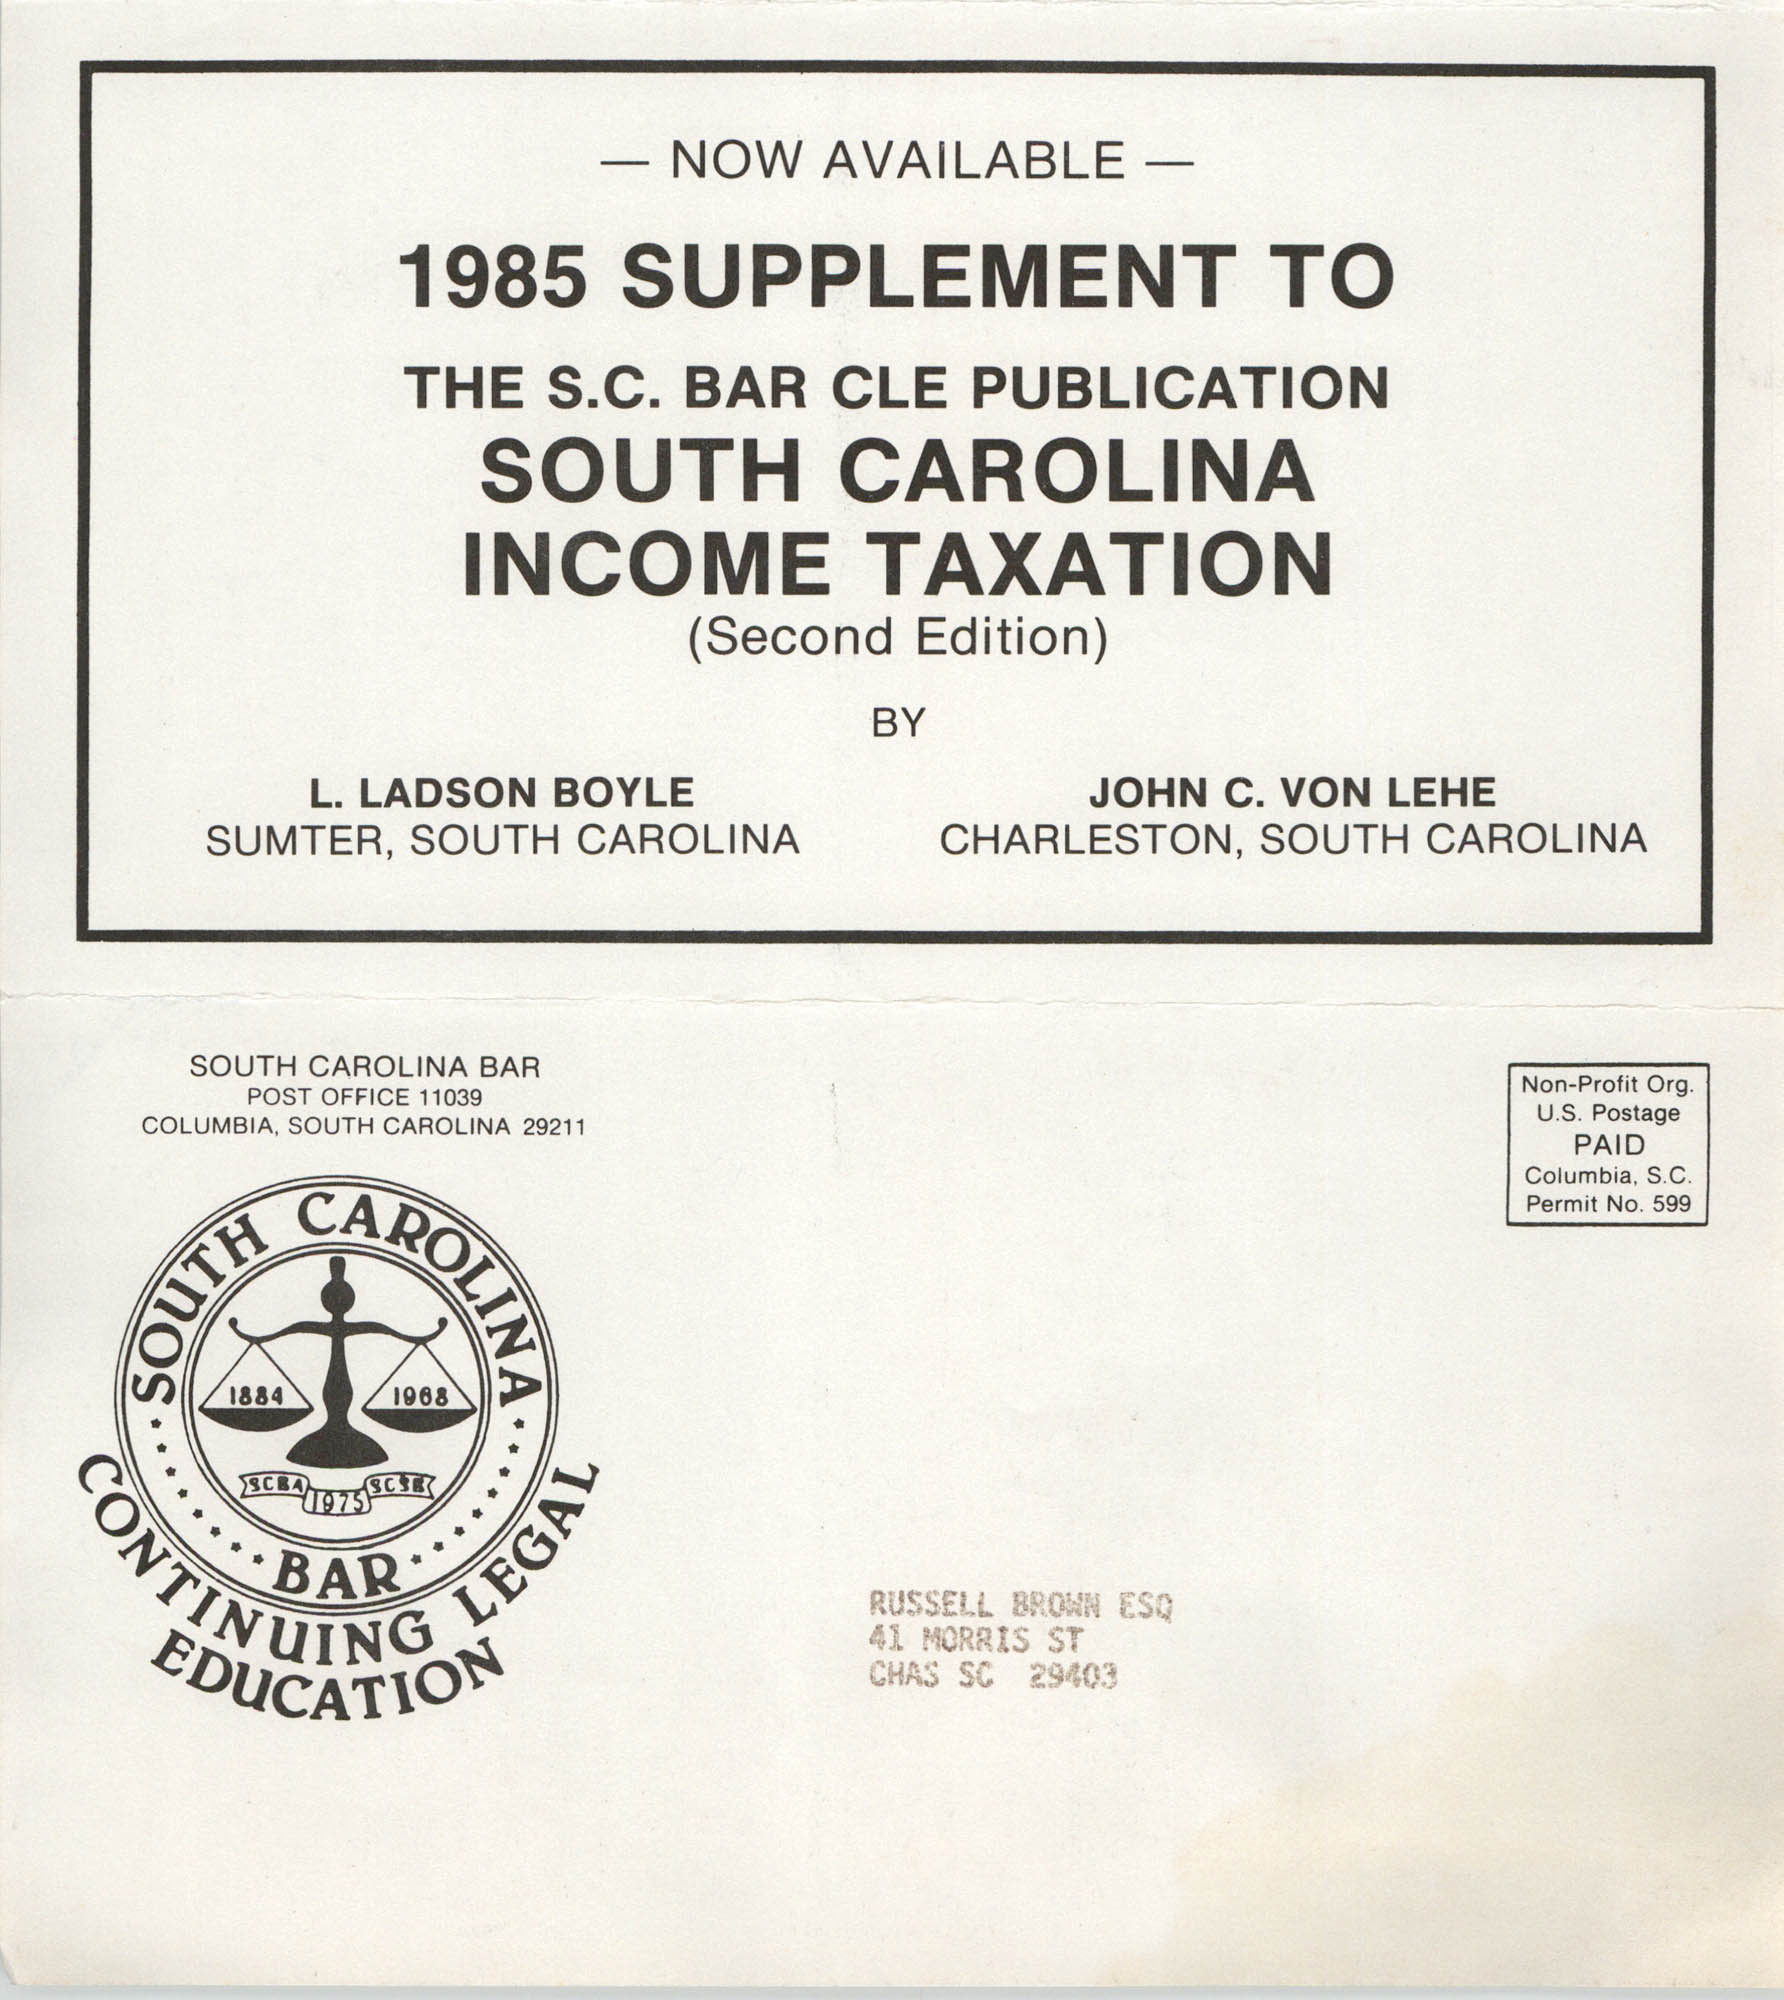 1985 Supplement to the S.C. Bar CLE Publication , South Carolina Income Taxation, Russell Brown